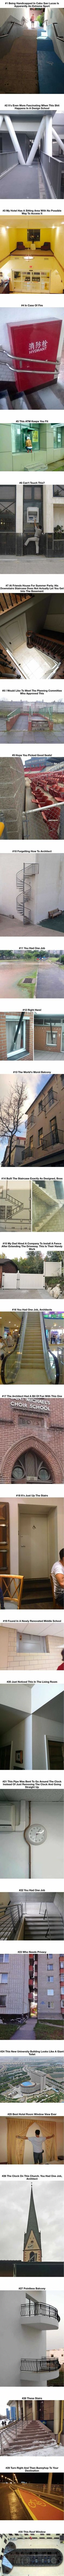 Architects who had one job and still failed